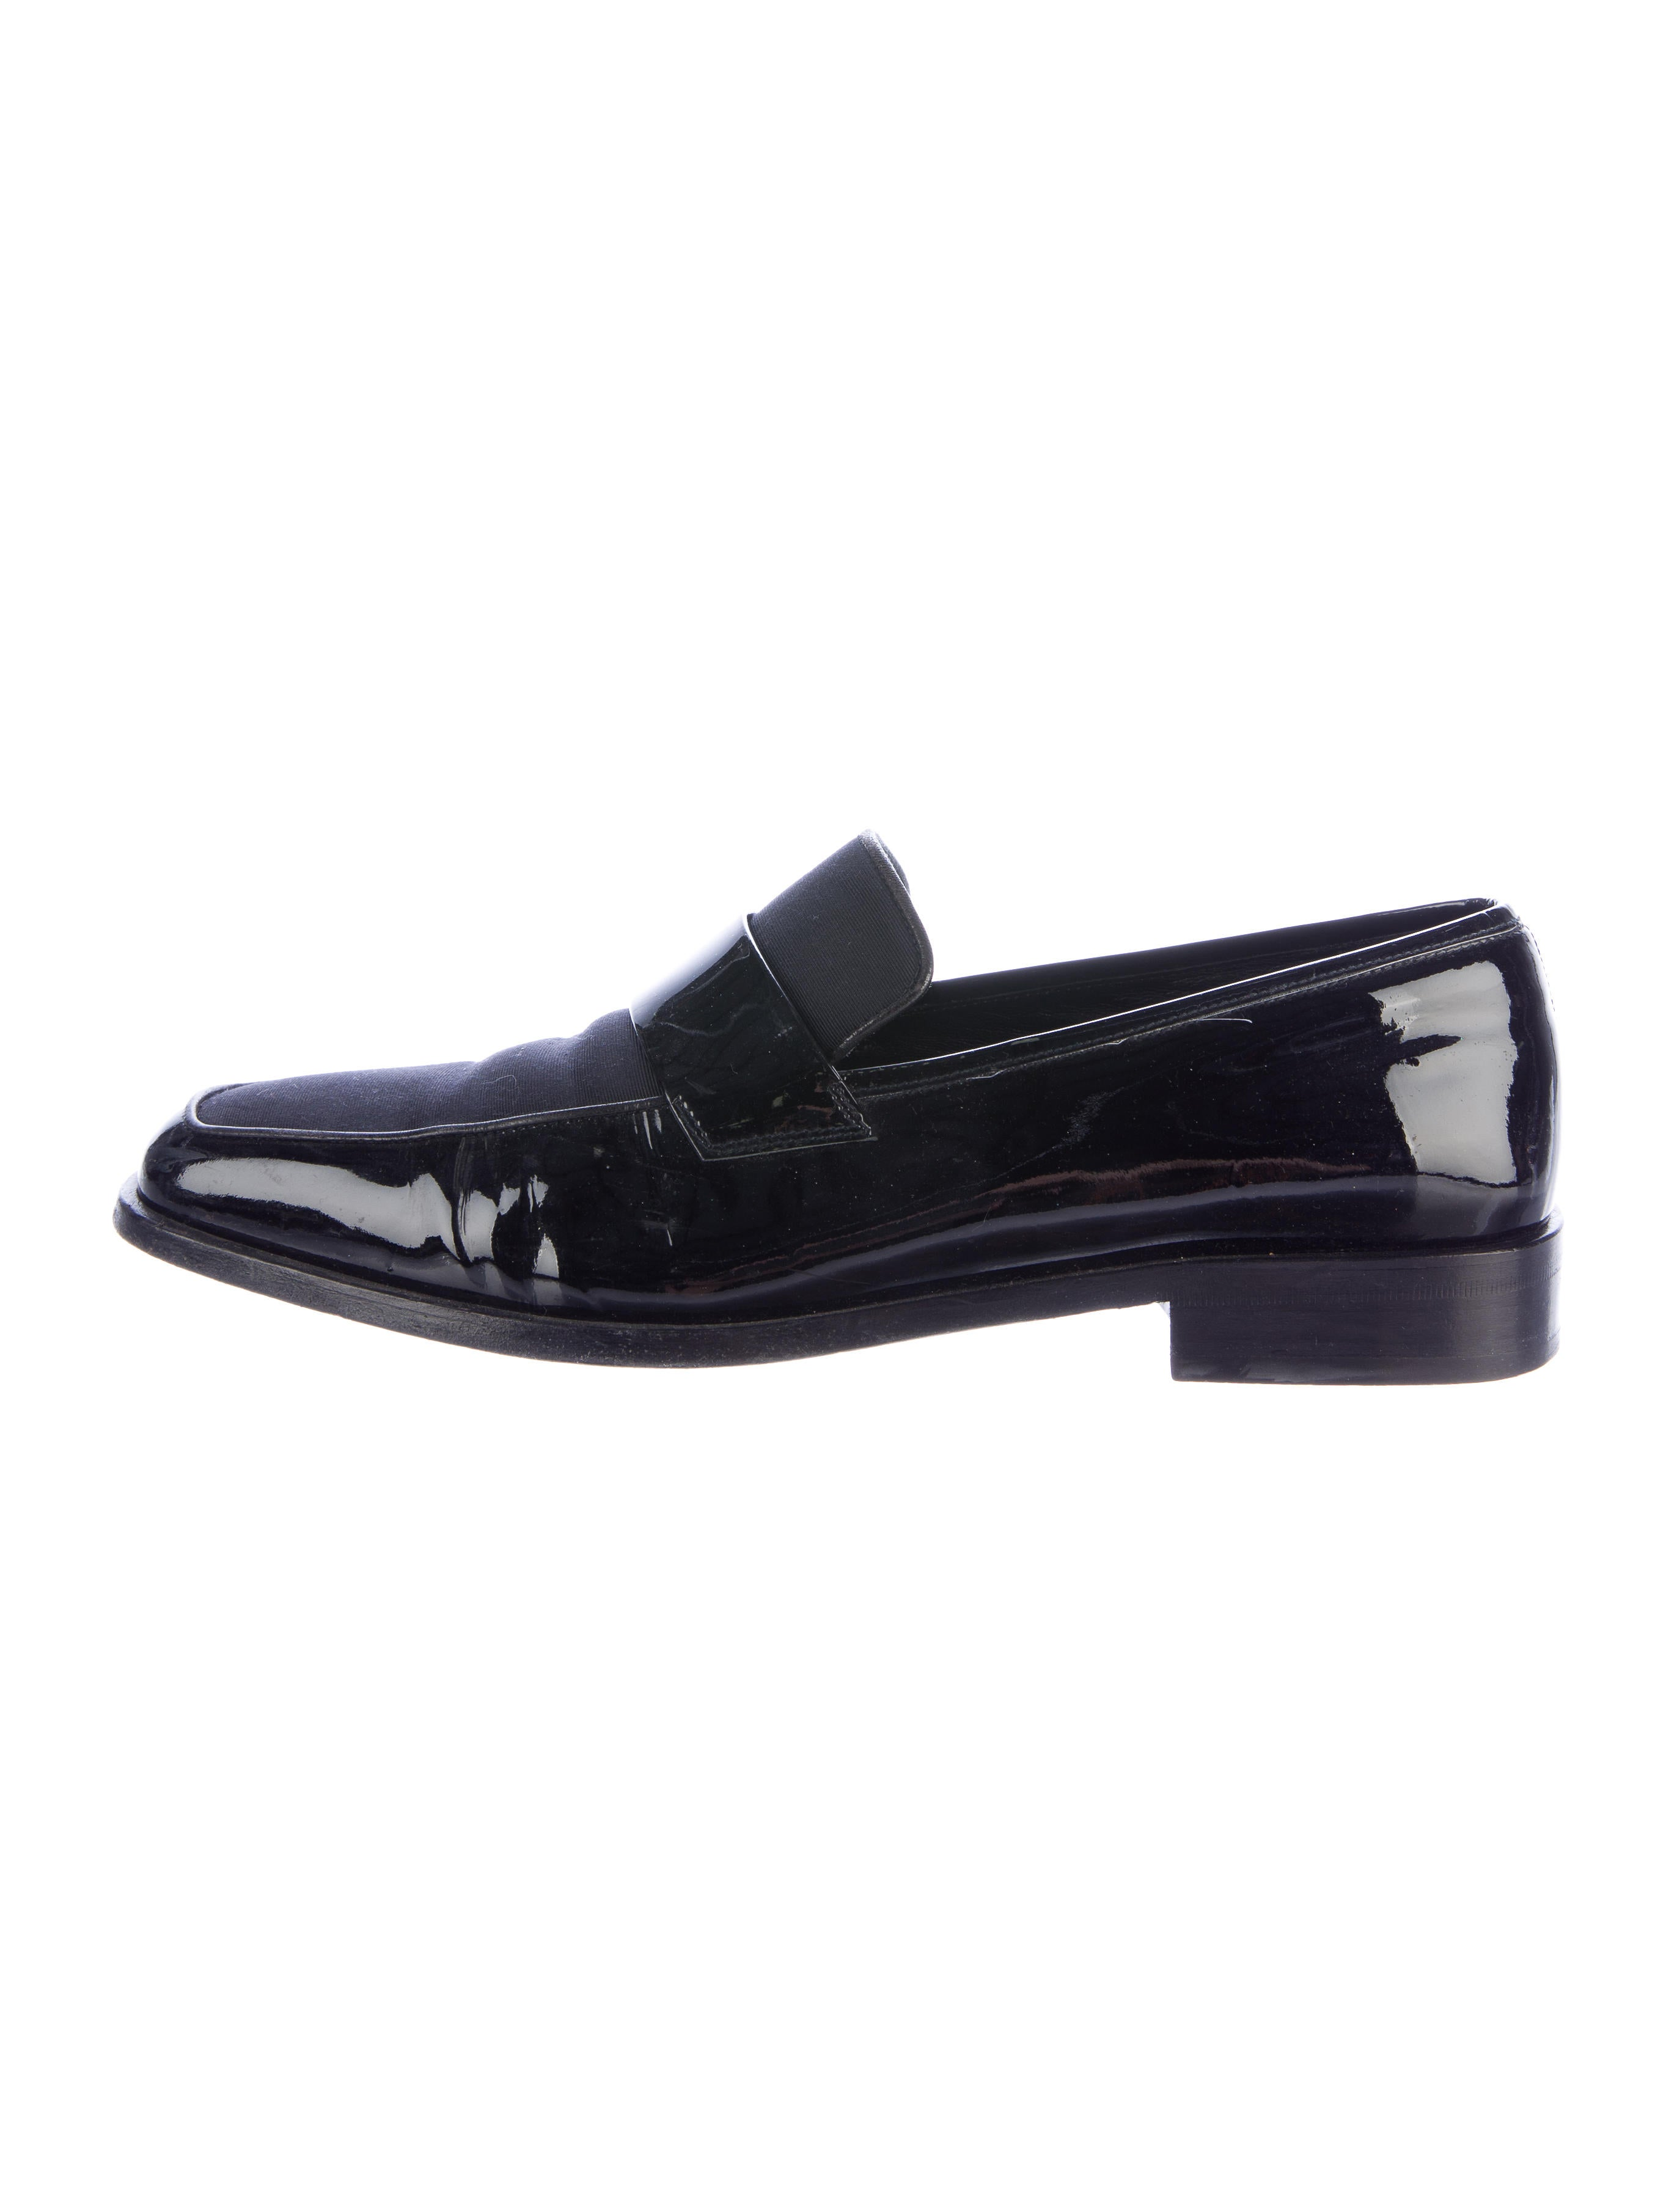 salvatore ferragamo patent leather dress loafers shoes